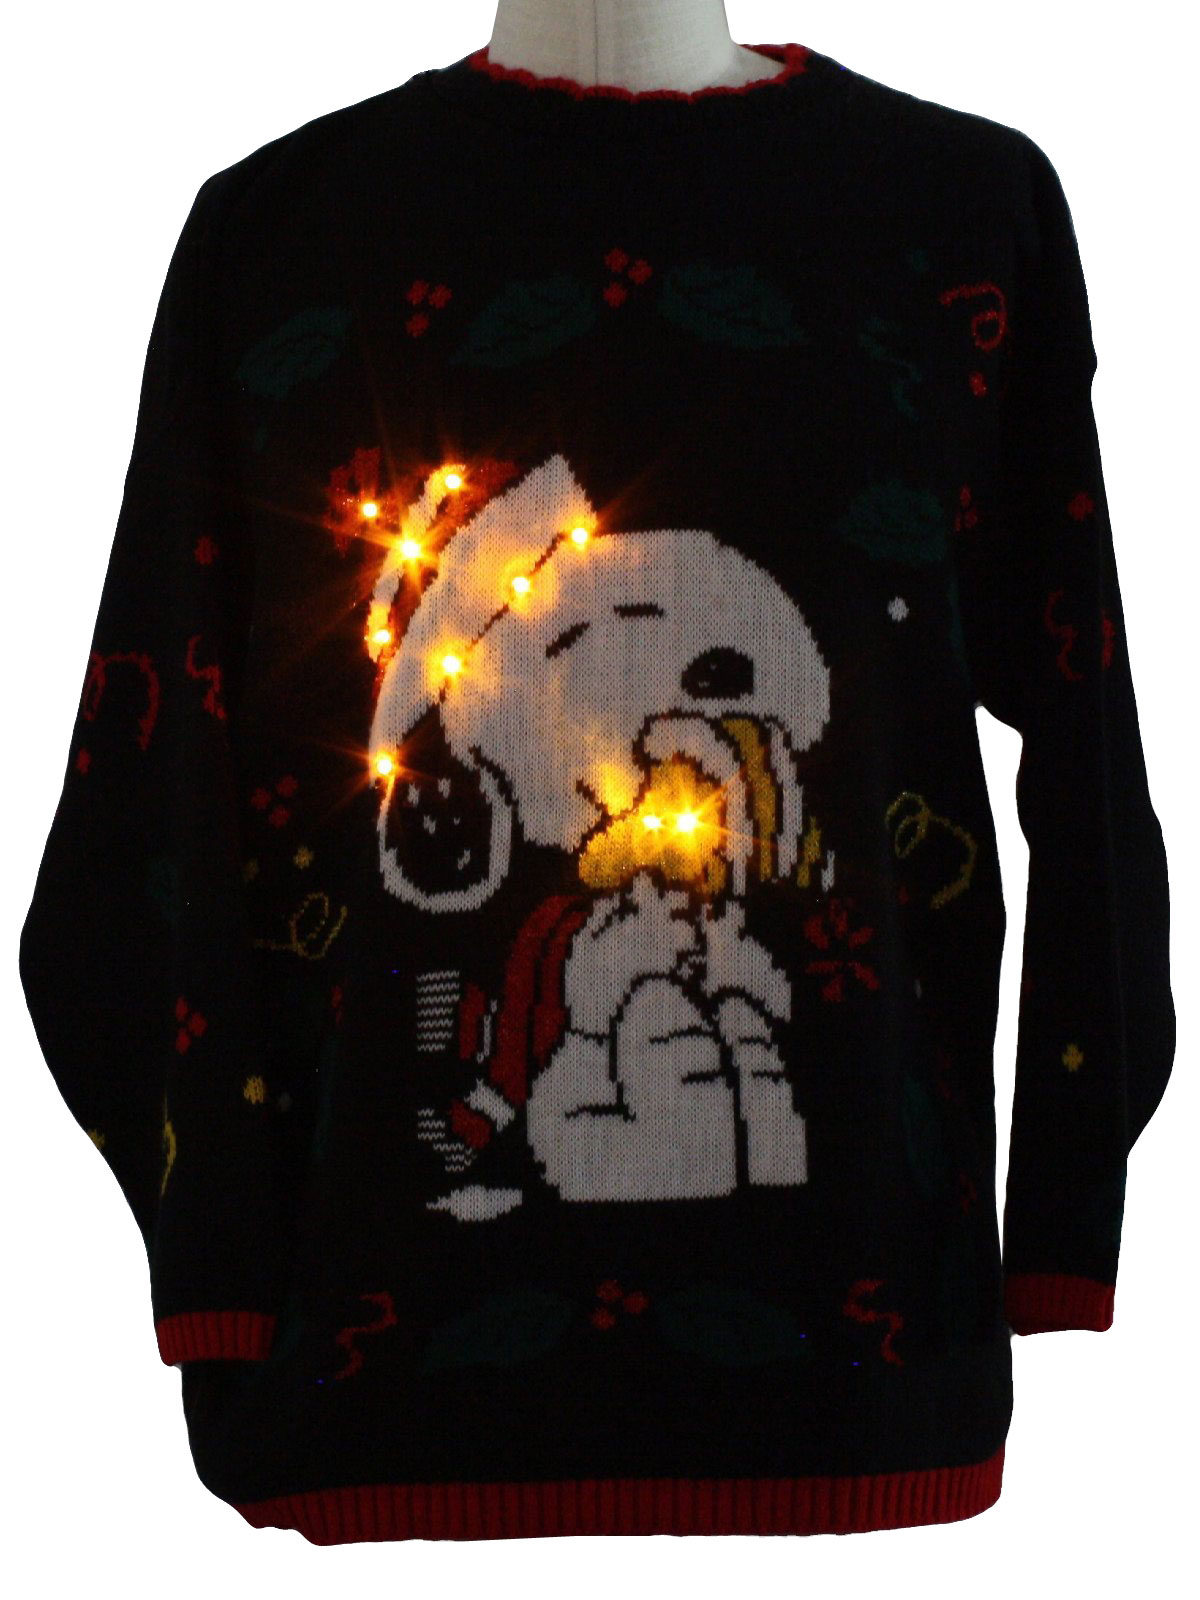 vintage 1980s snoopy lightup ugly christmas sweater 80s authentic vintage made in usa snoopy and friends unisex black white red green and yellow